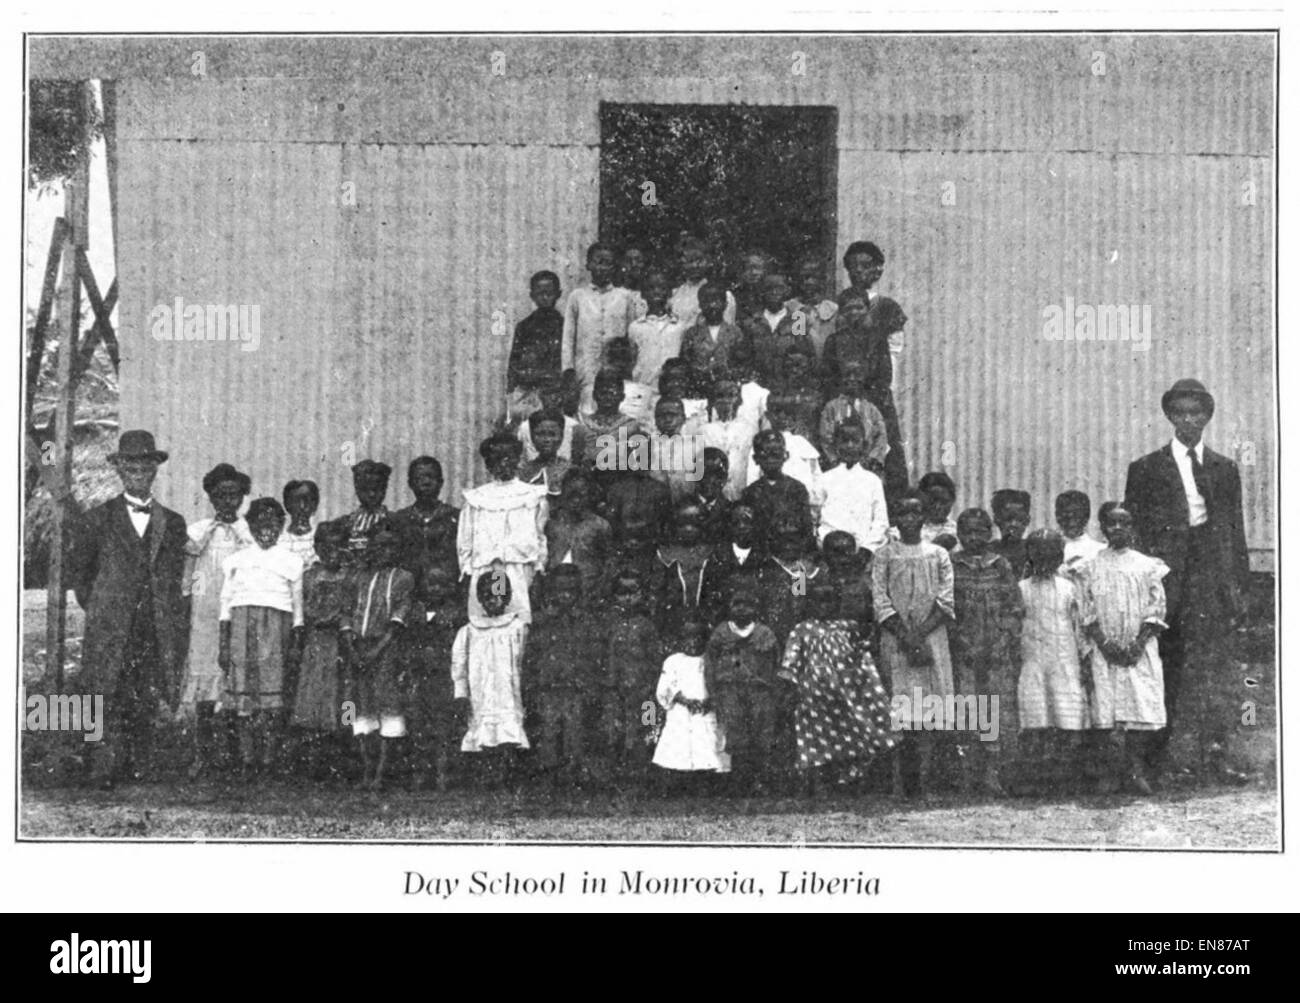 HEARD(1910) 08 - A.M.E. Day School at Monrovia, Liberia - Stock Image